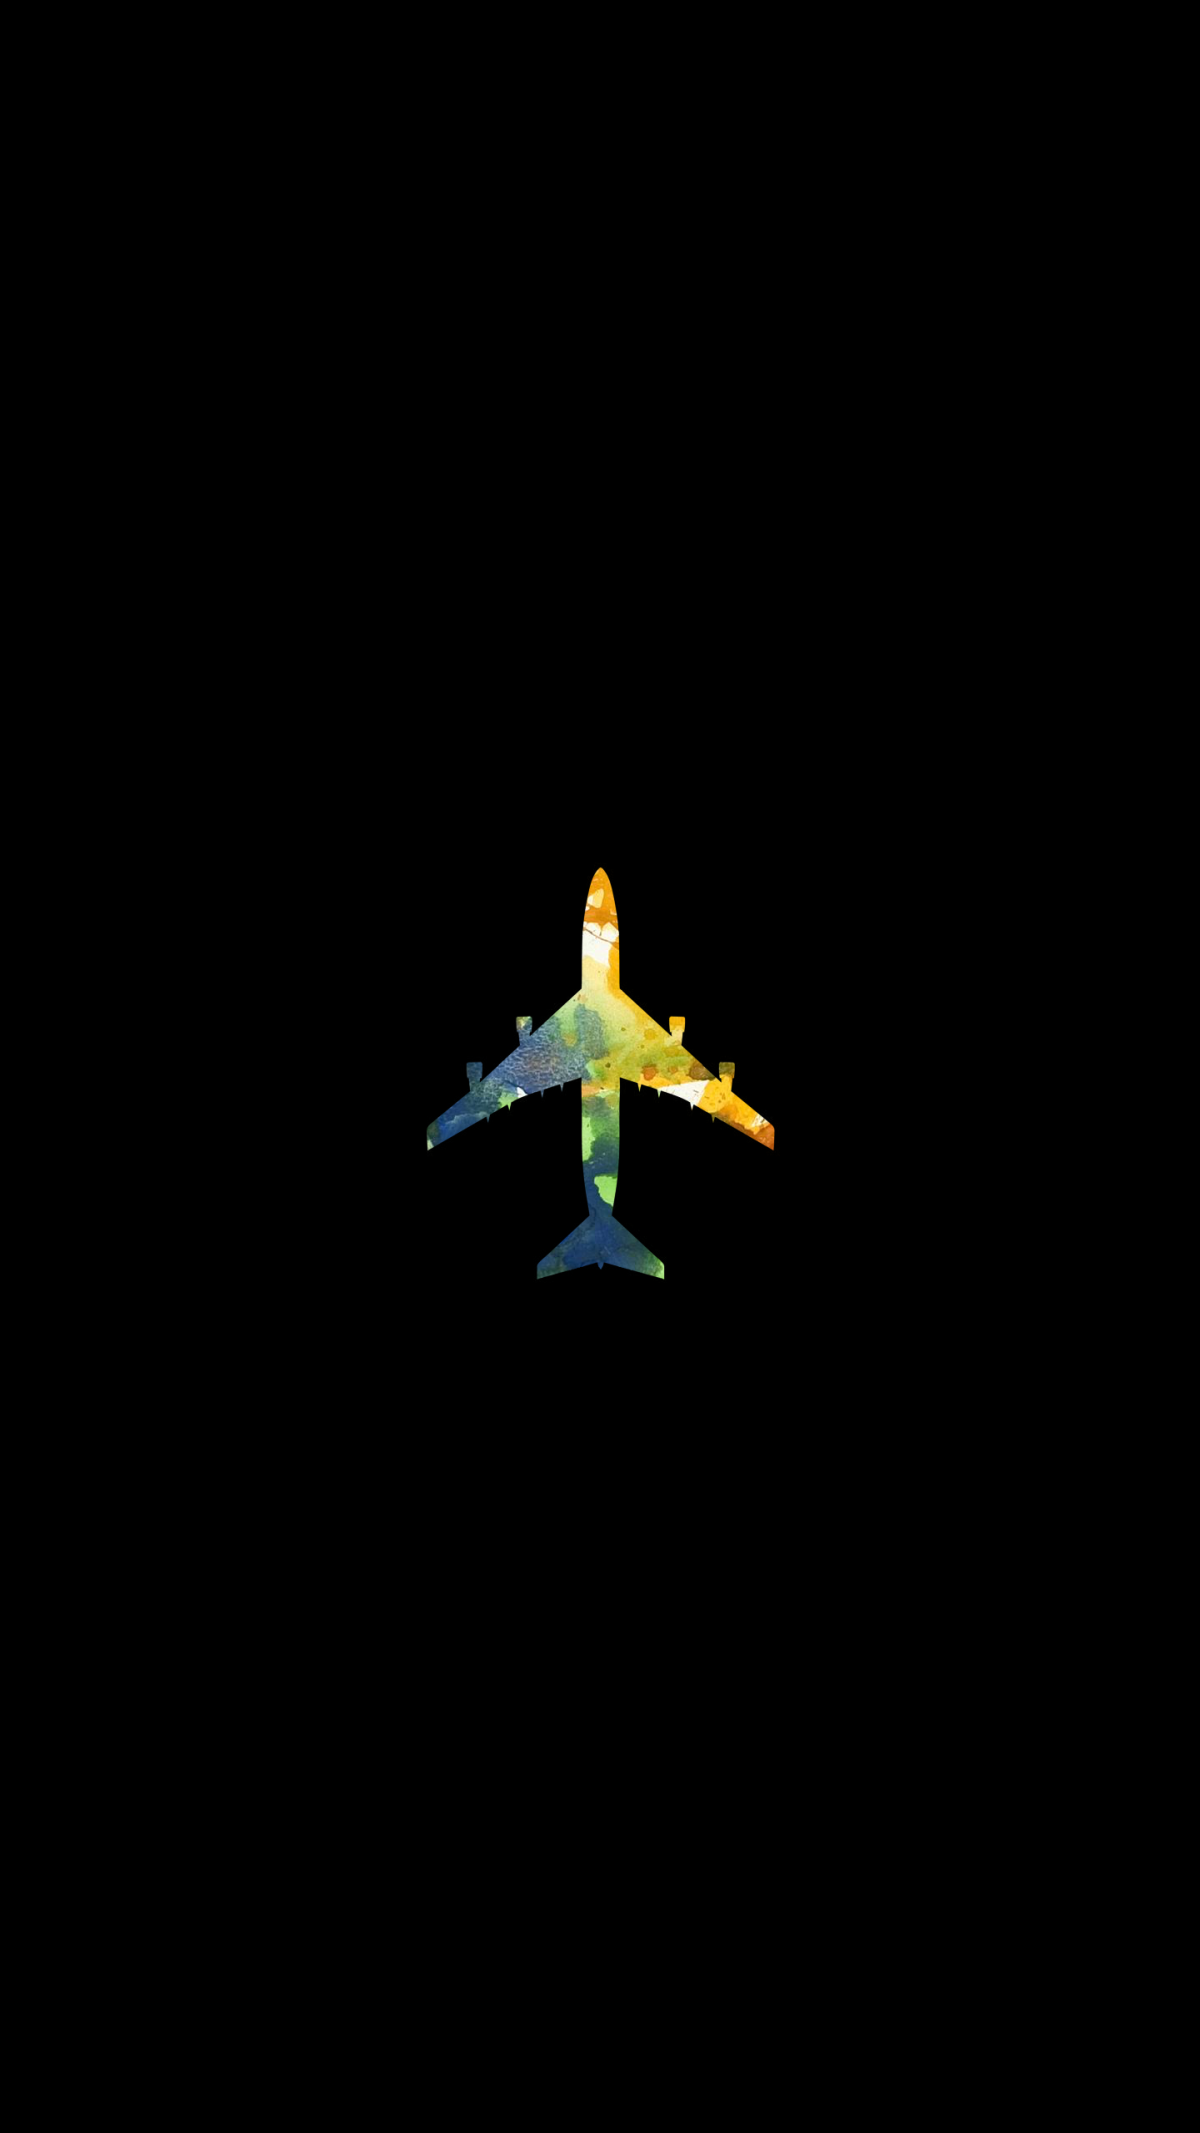 Iphone X Wallpapers 35 Great Images For An Amoled Screen Phone Wallpaper Airplane Wallpaper Black Wallpaper